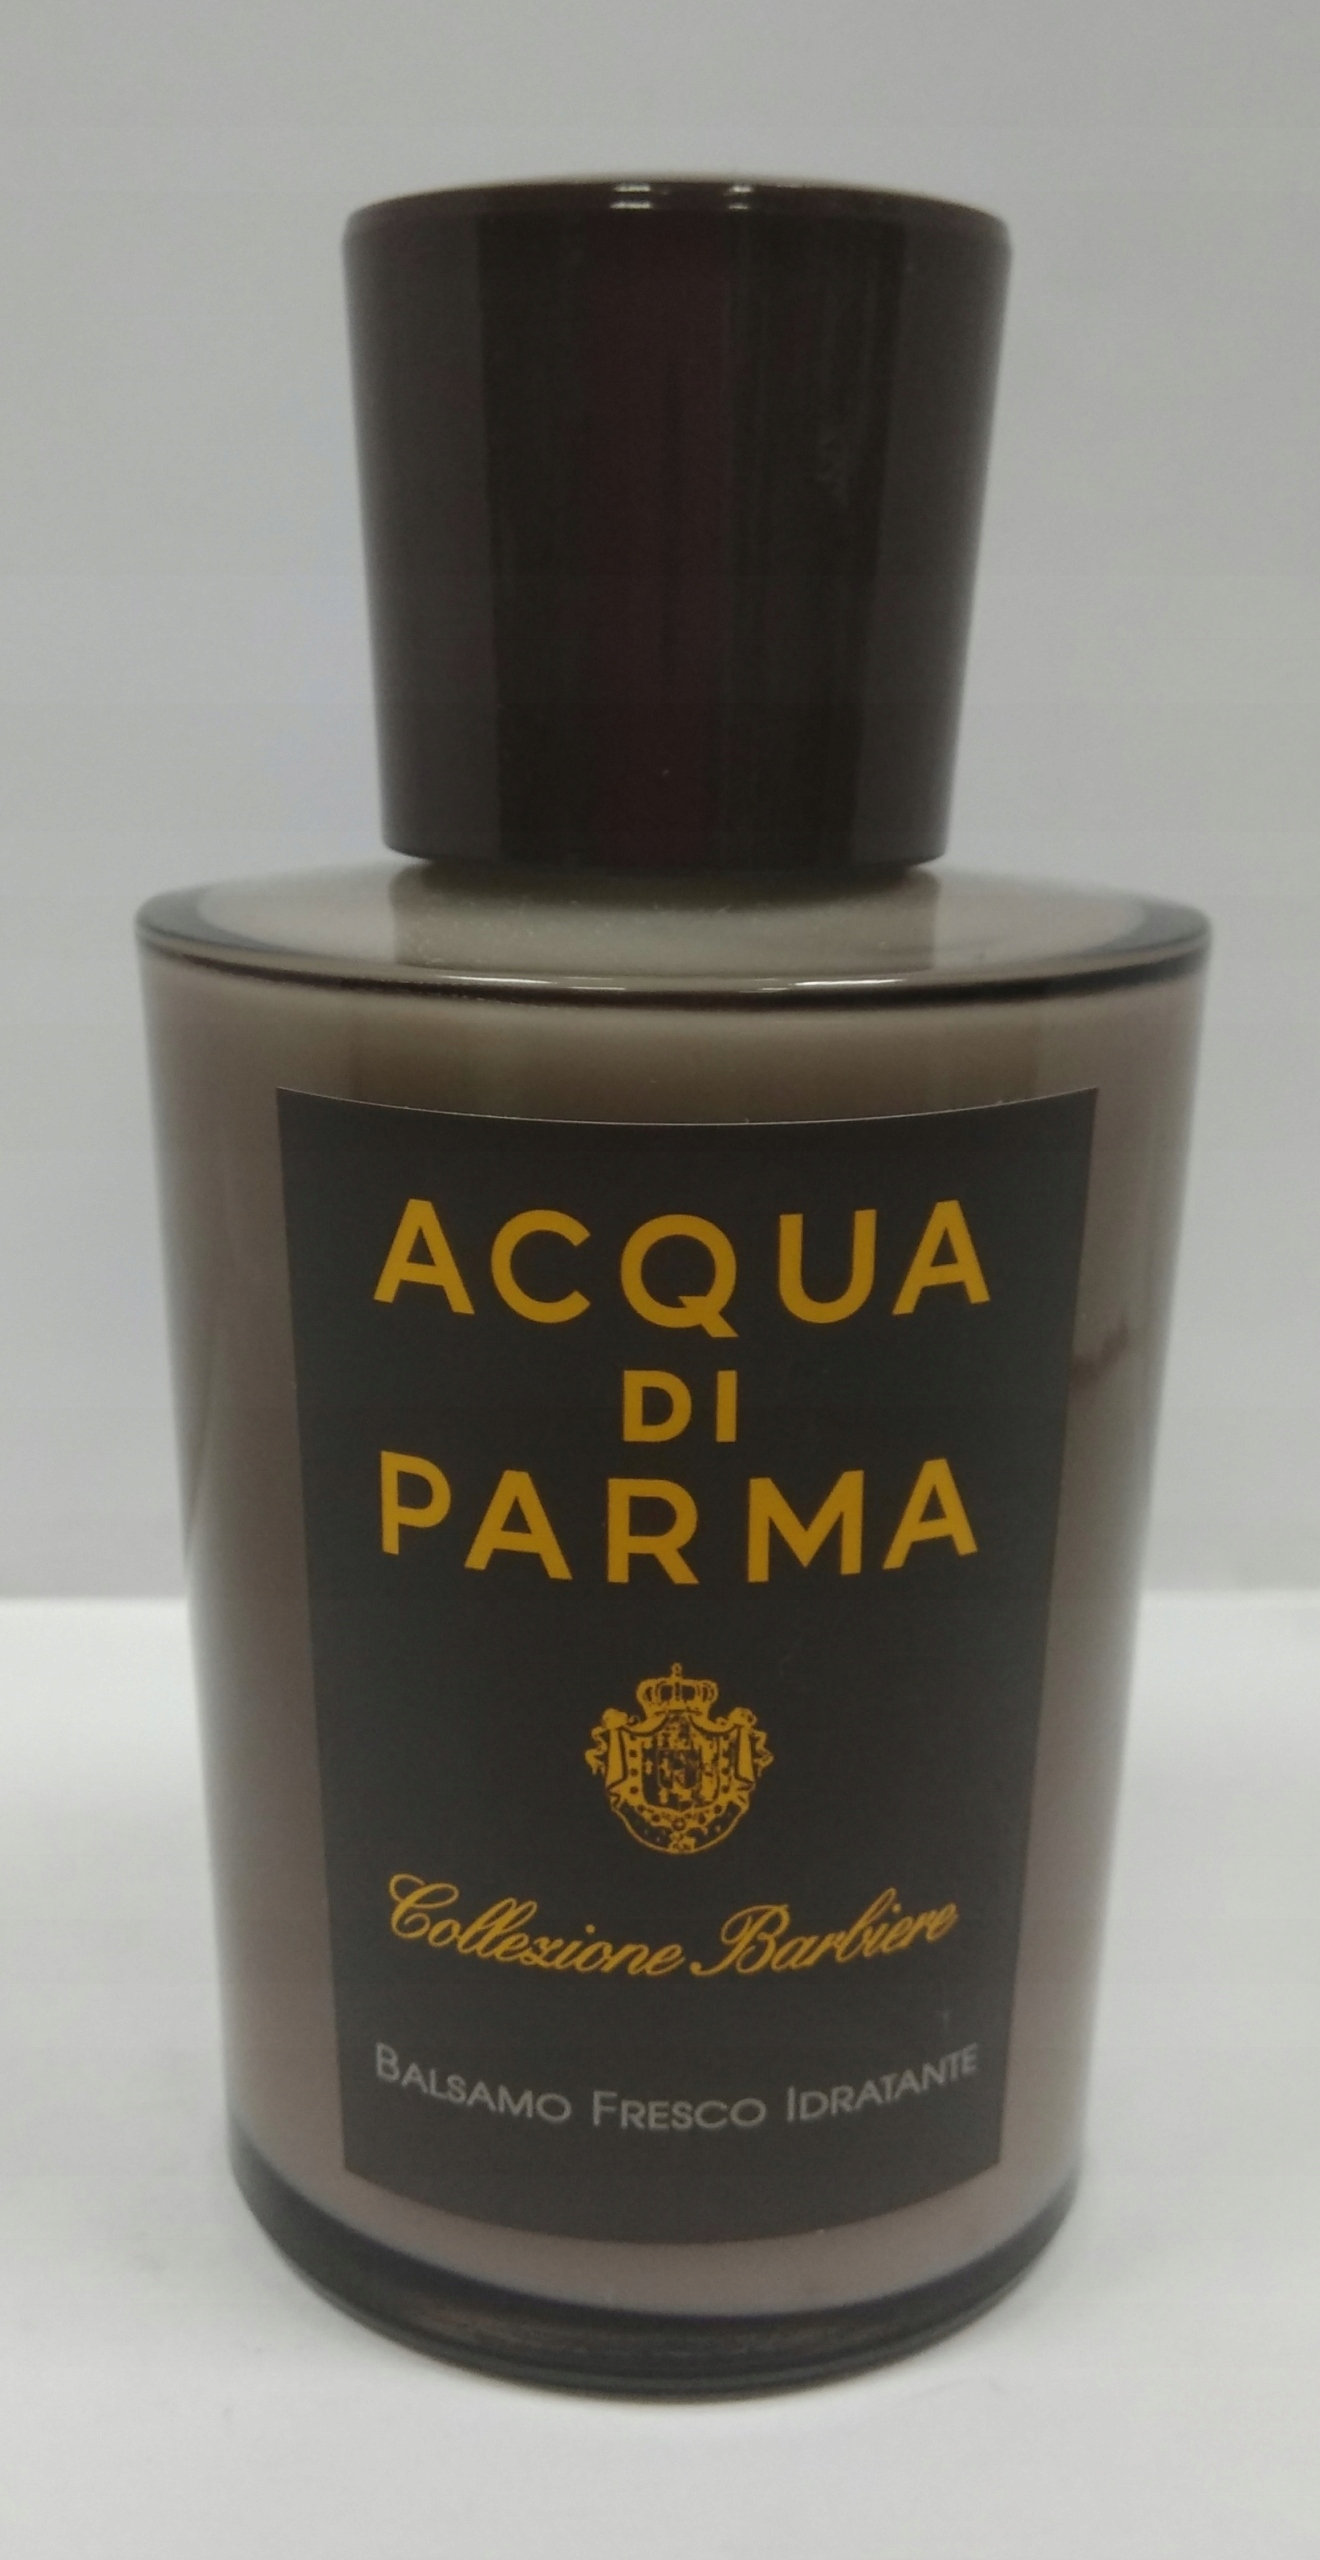 Collezione Barbiere Shaving & Hair Removal Aftershave & Pre-shave Balsamo Fresco Idratante Acqua Di Parma Balsamo Fresco Idr